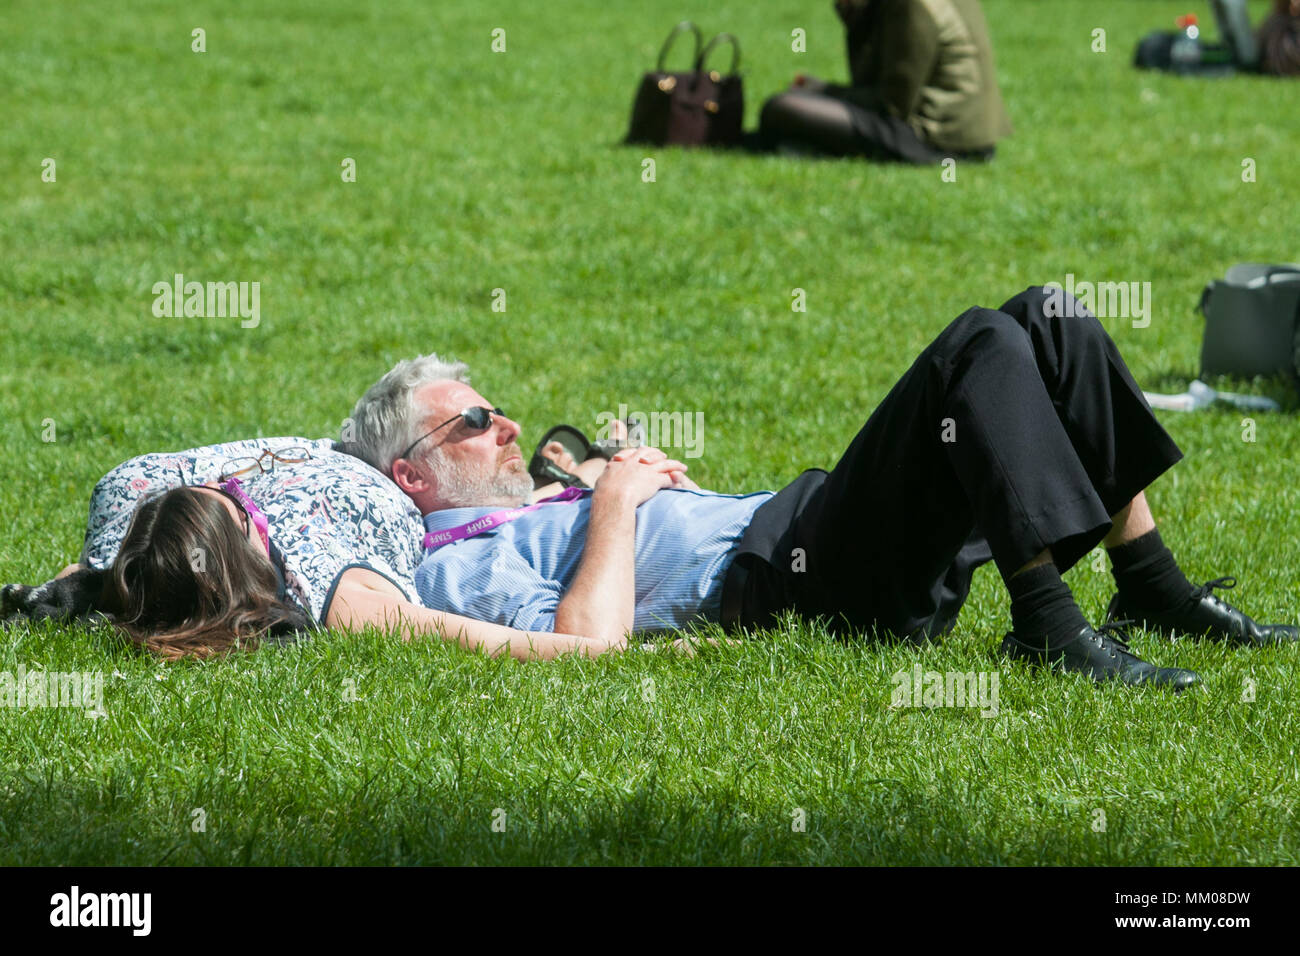 People Sunbathing And Relaxing The Spring Sunshine In Victoria Gardens  Westminster Although Temperatures Have Cooled Down After The Hot May Bank  Holiday ... Good Looking